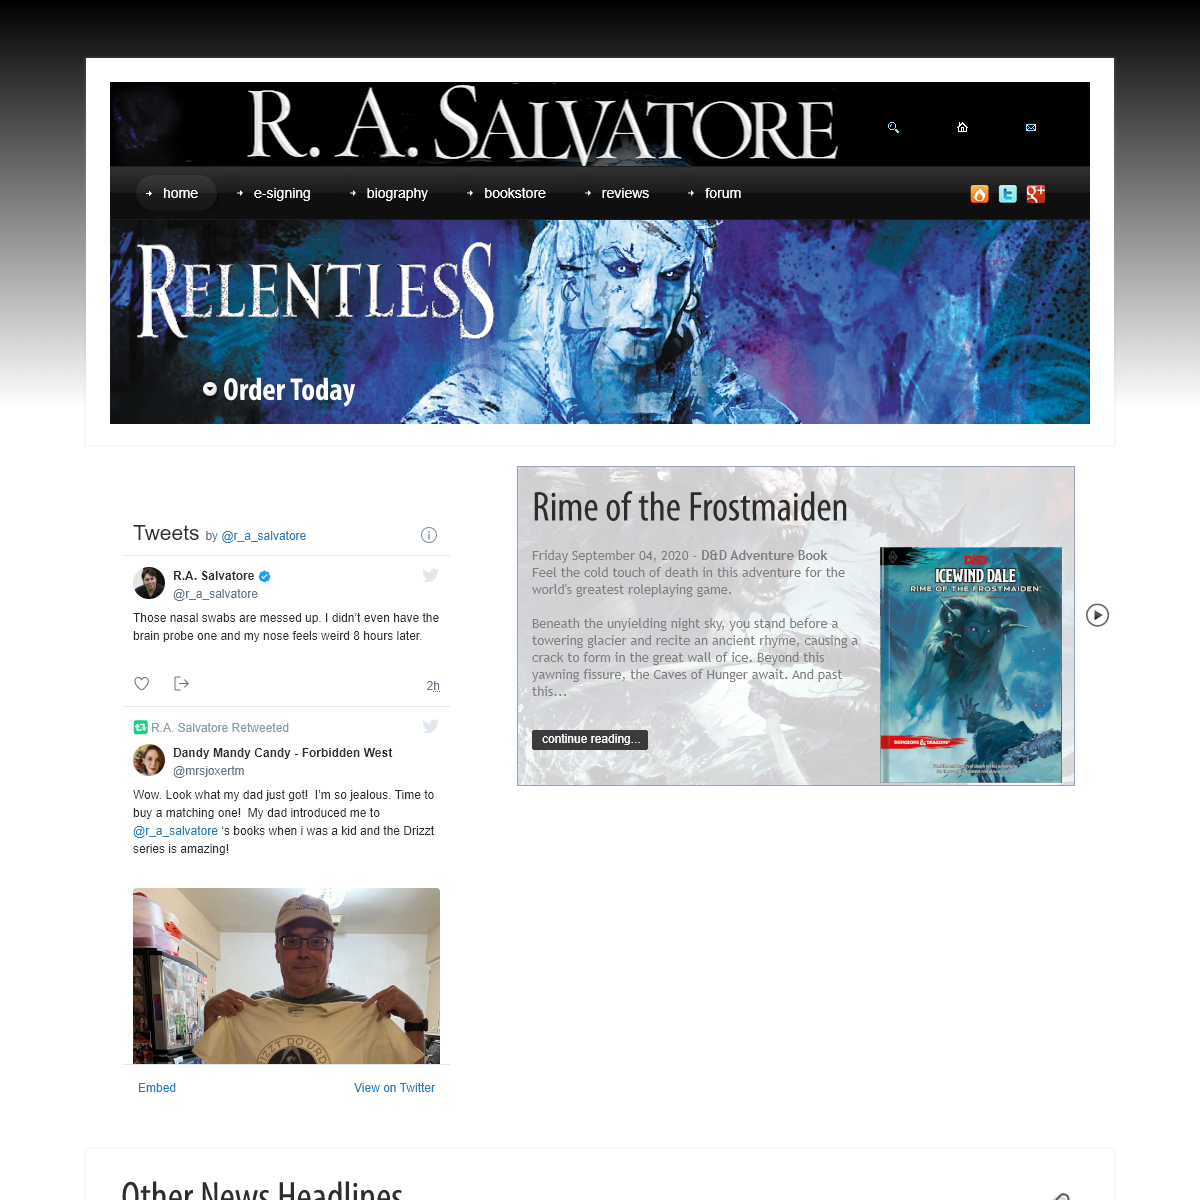 N.Y. Times Bestselling Author R. A. Salvatore